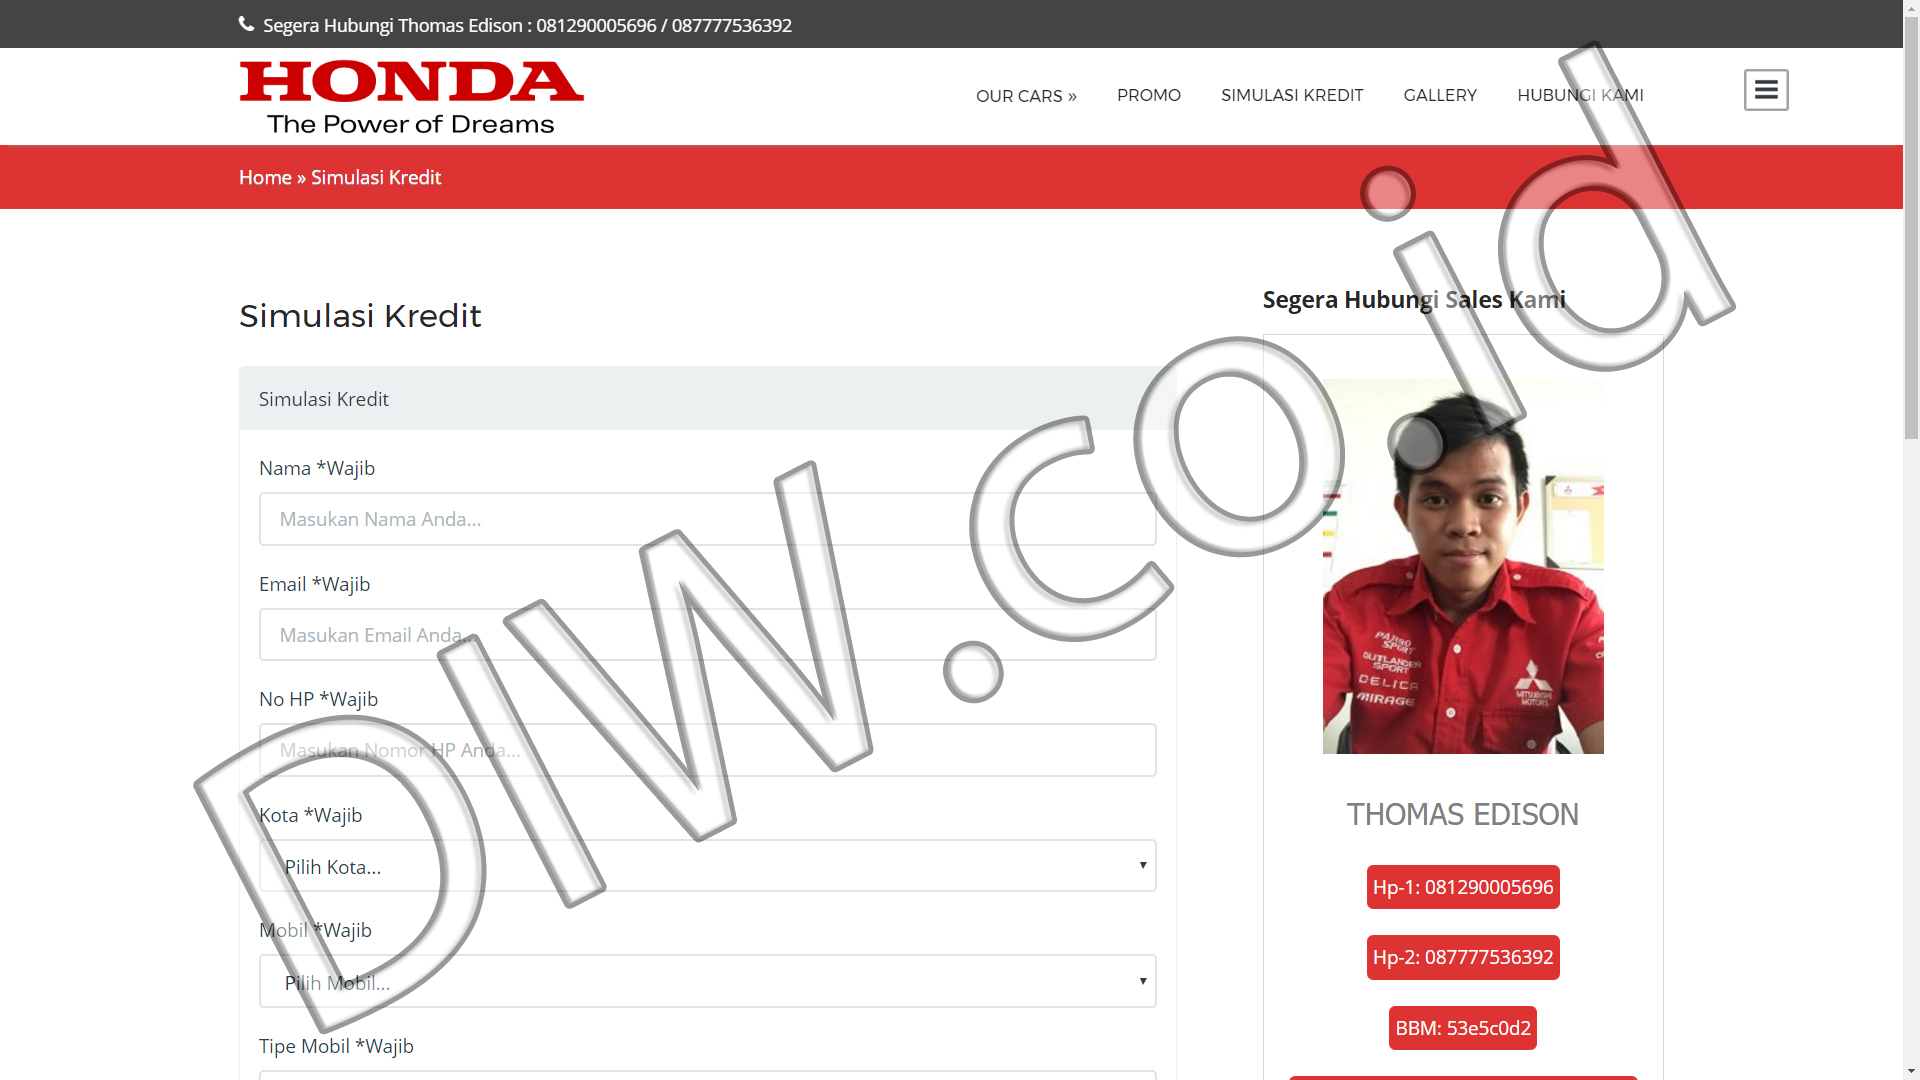 Portfolio 3 - Promo Honda Mobil - Andri Sunardi - Freelancer - Web Developer - CEO DIW.co.id